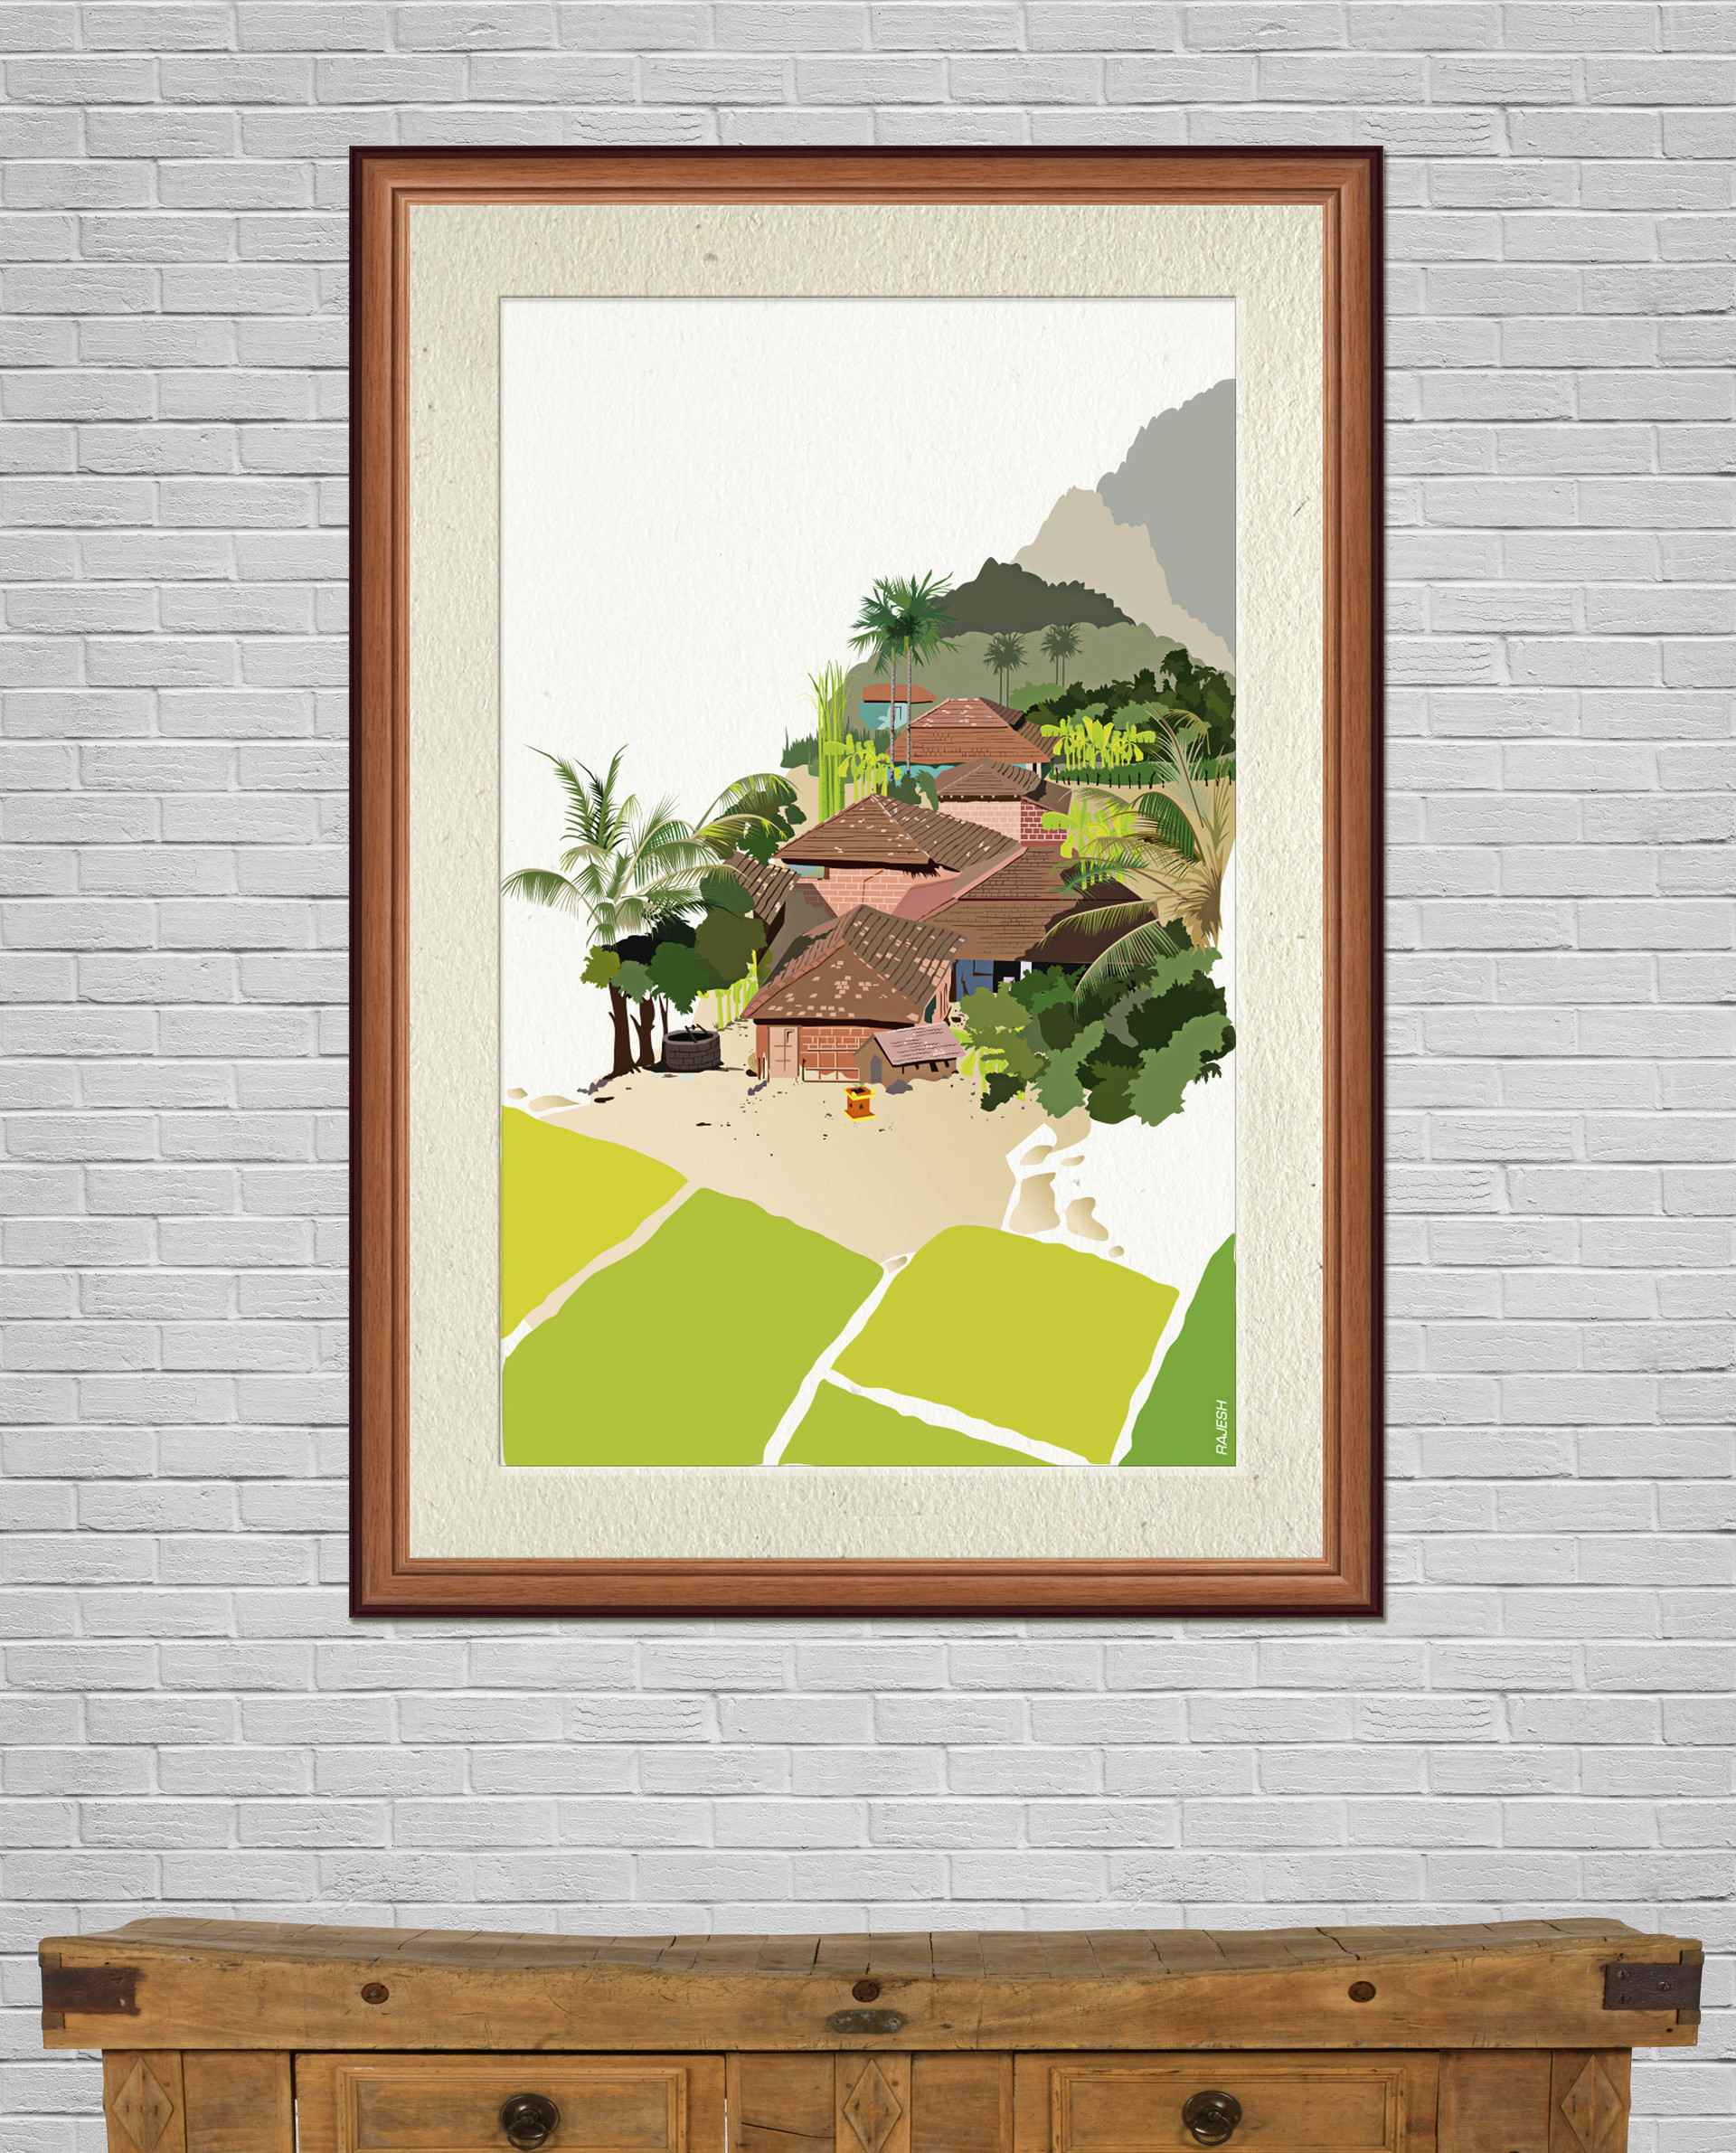 Rajesh r sawant konkan framed on wall